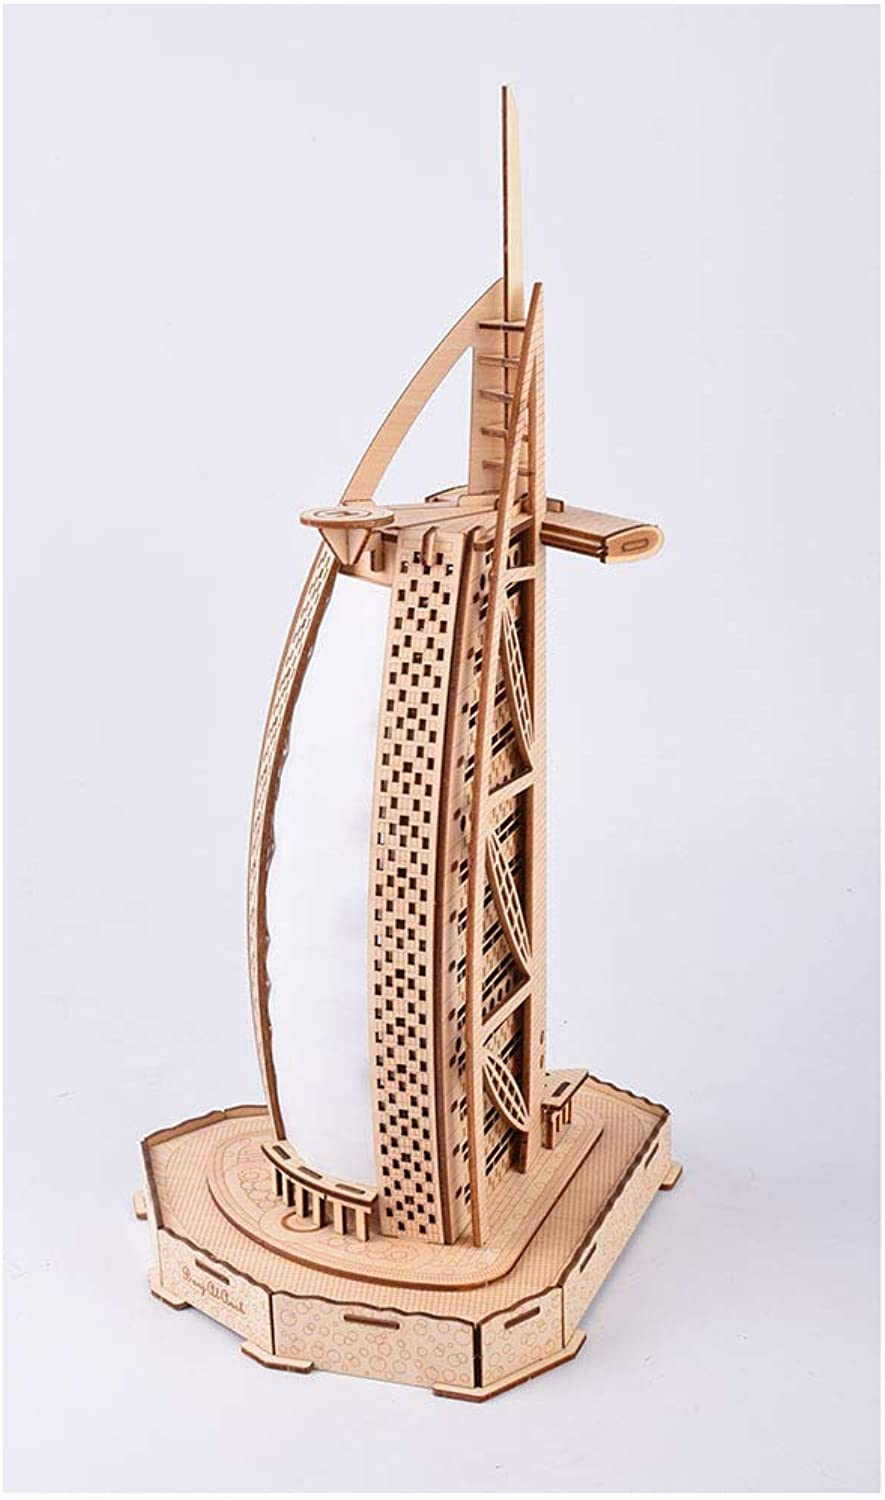 3D Jigsaw Puzzles DIY Burj Al Arab Hotel, Wooden Assembly Kits 85pc Educational Toys Gifts for Kids